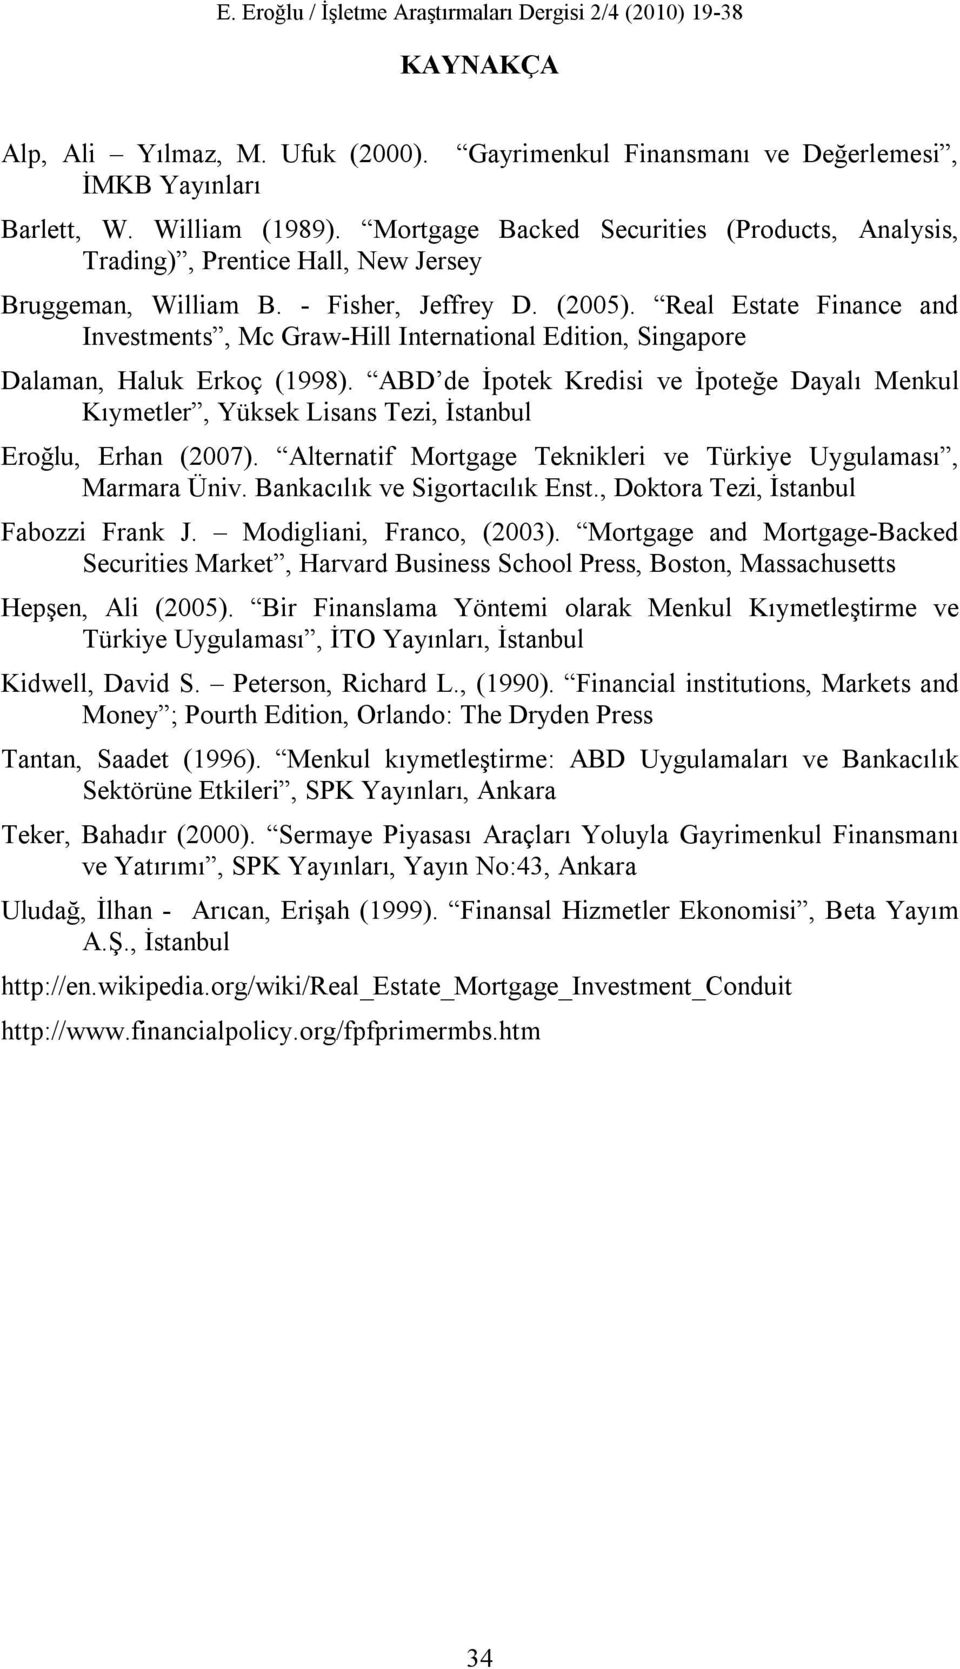 Real Estate Finance and Investments, Mc Graw-Hill International Edition, Singapore Dalaman, Haluk Erkoç (1998).